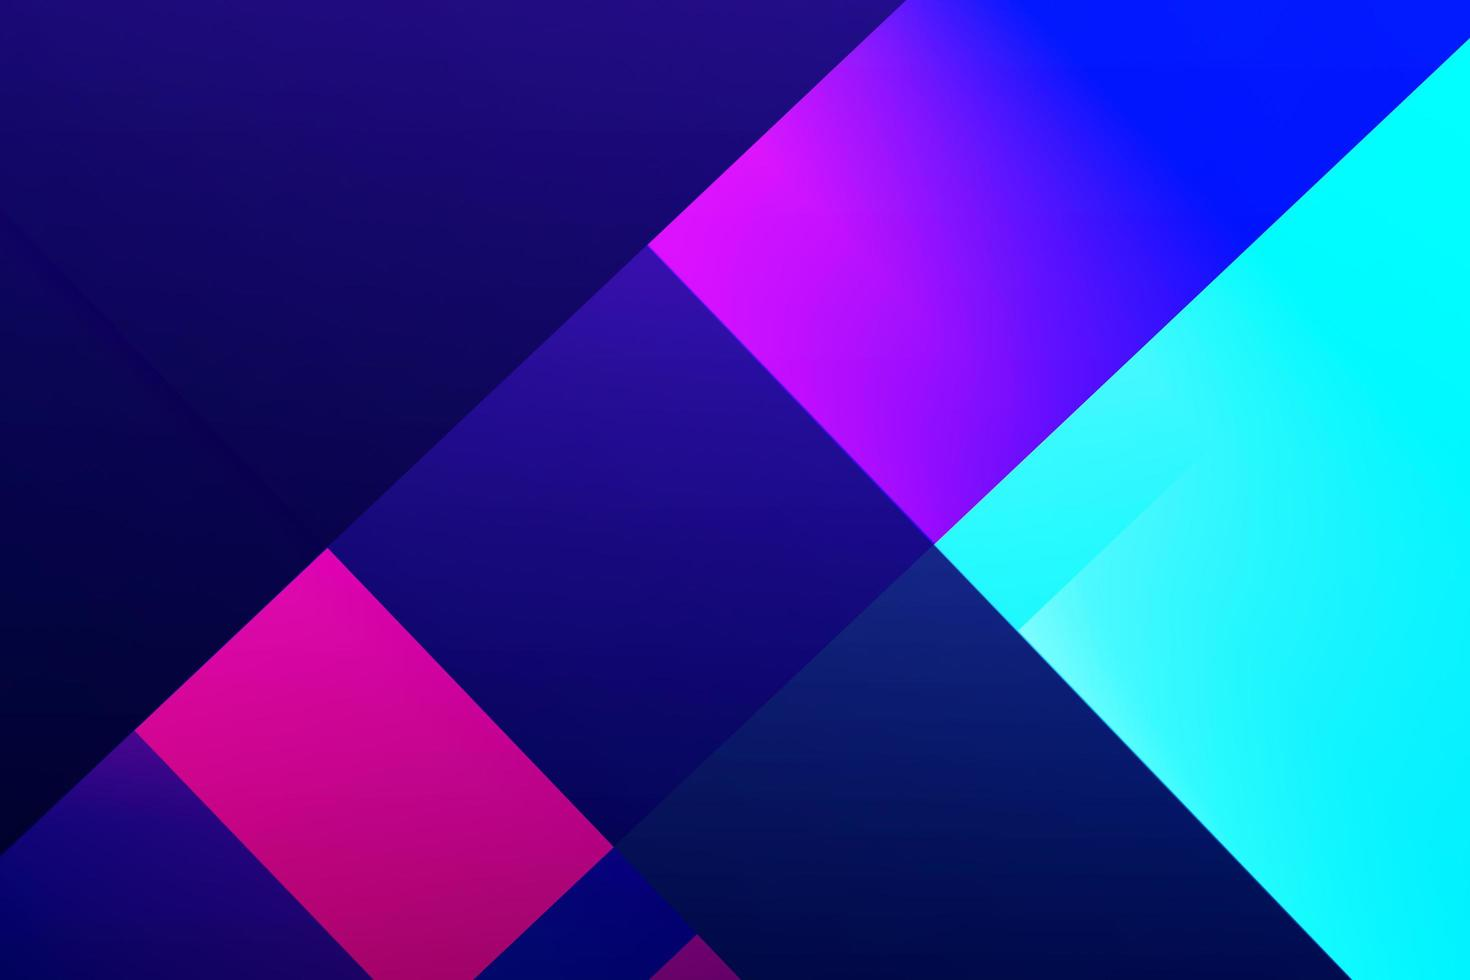 Abstract multicolor geometric block shape background with gradient fills photo